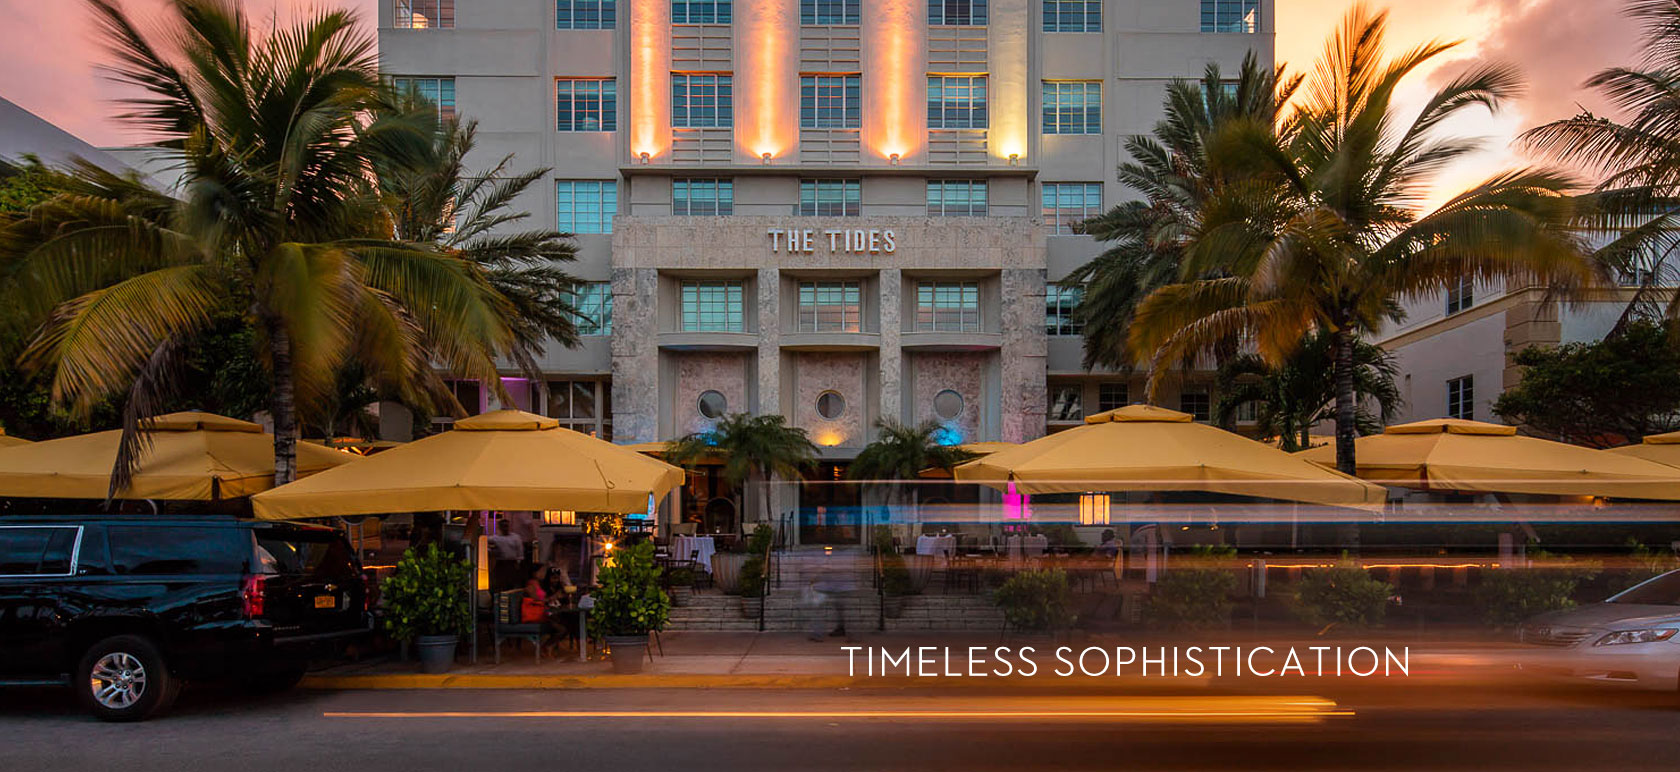 Tides south beach